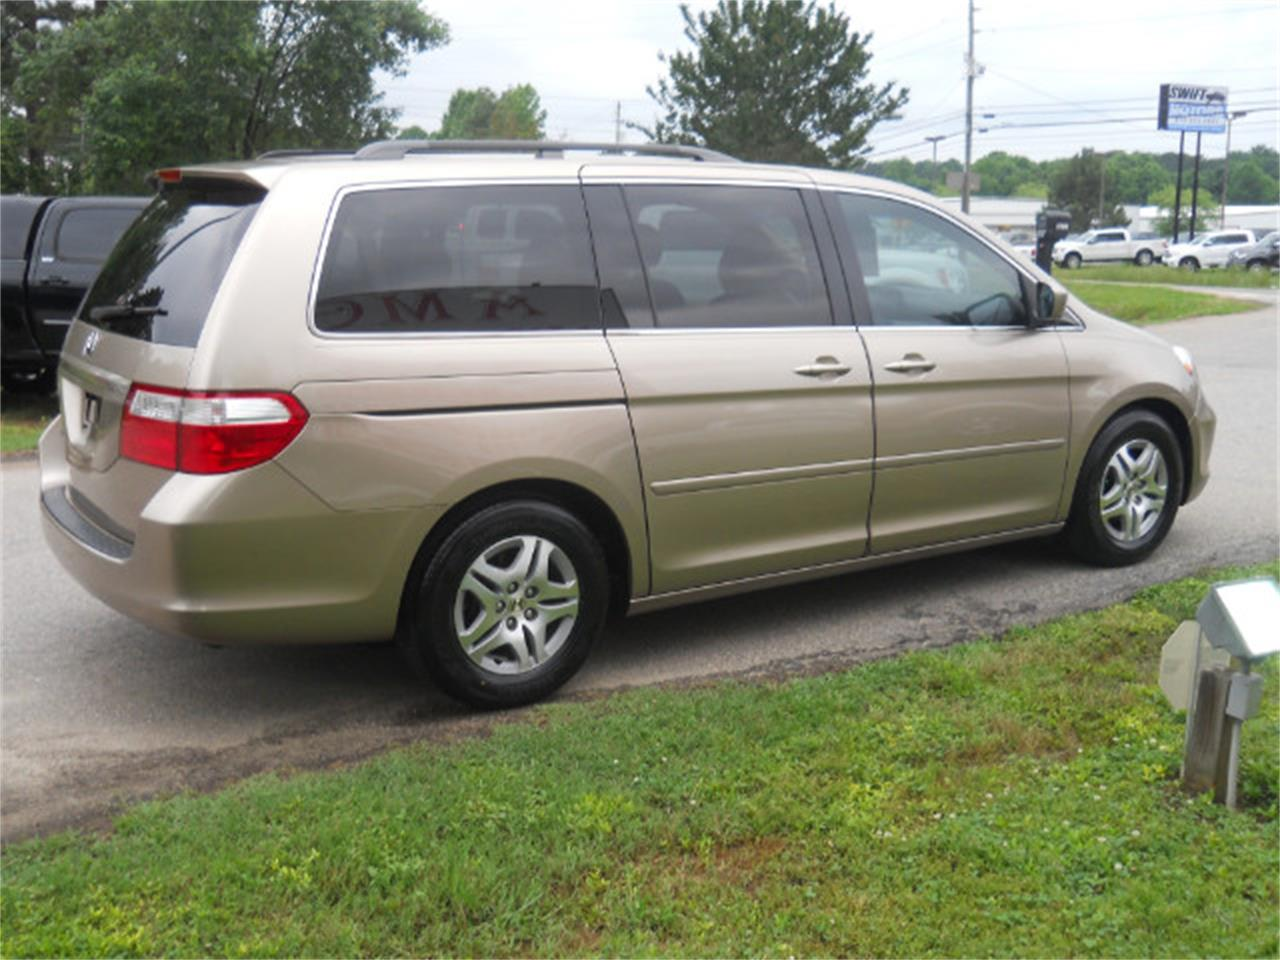 Large Picture of 2006 Honda Odyssey - $7,450.00 Offered by AMG Auto Sales - L5SG